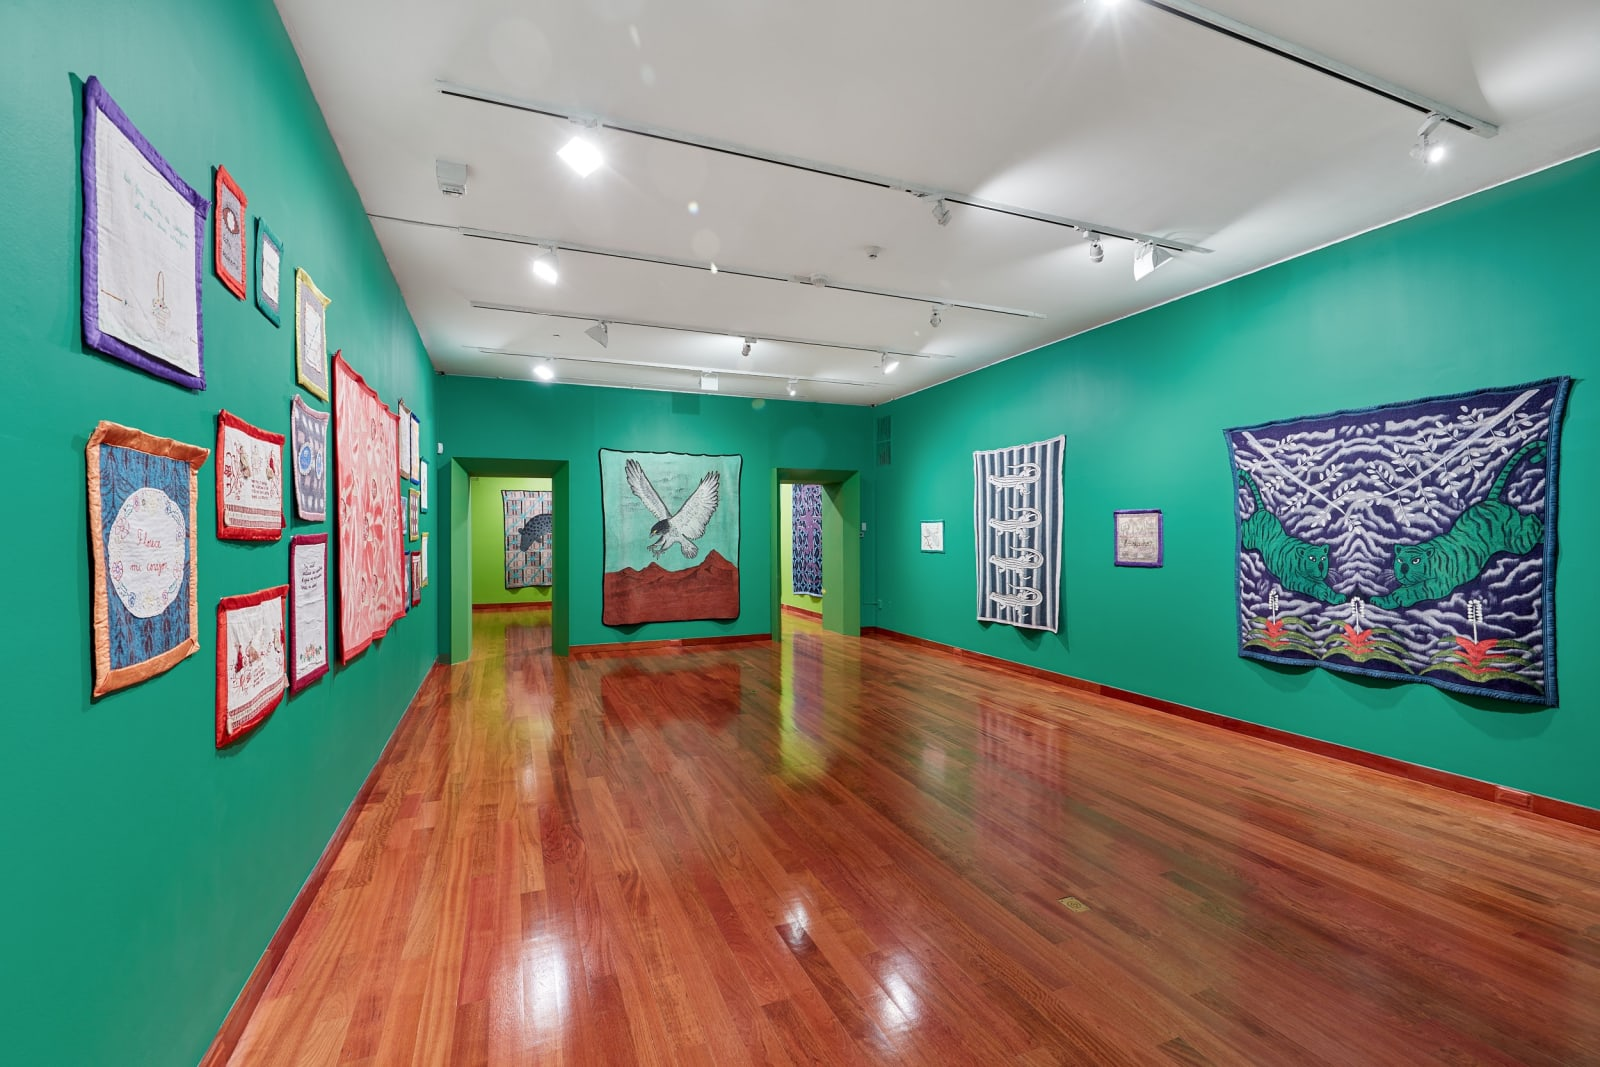 Installation view of Feliciano Centurión: Abrigo at Americas Society, February 14-May 16, 2020. Photo by OnWhiteWall.com, courtesy of Americas Society.